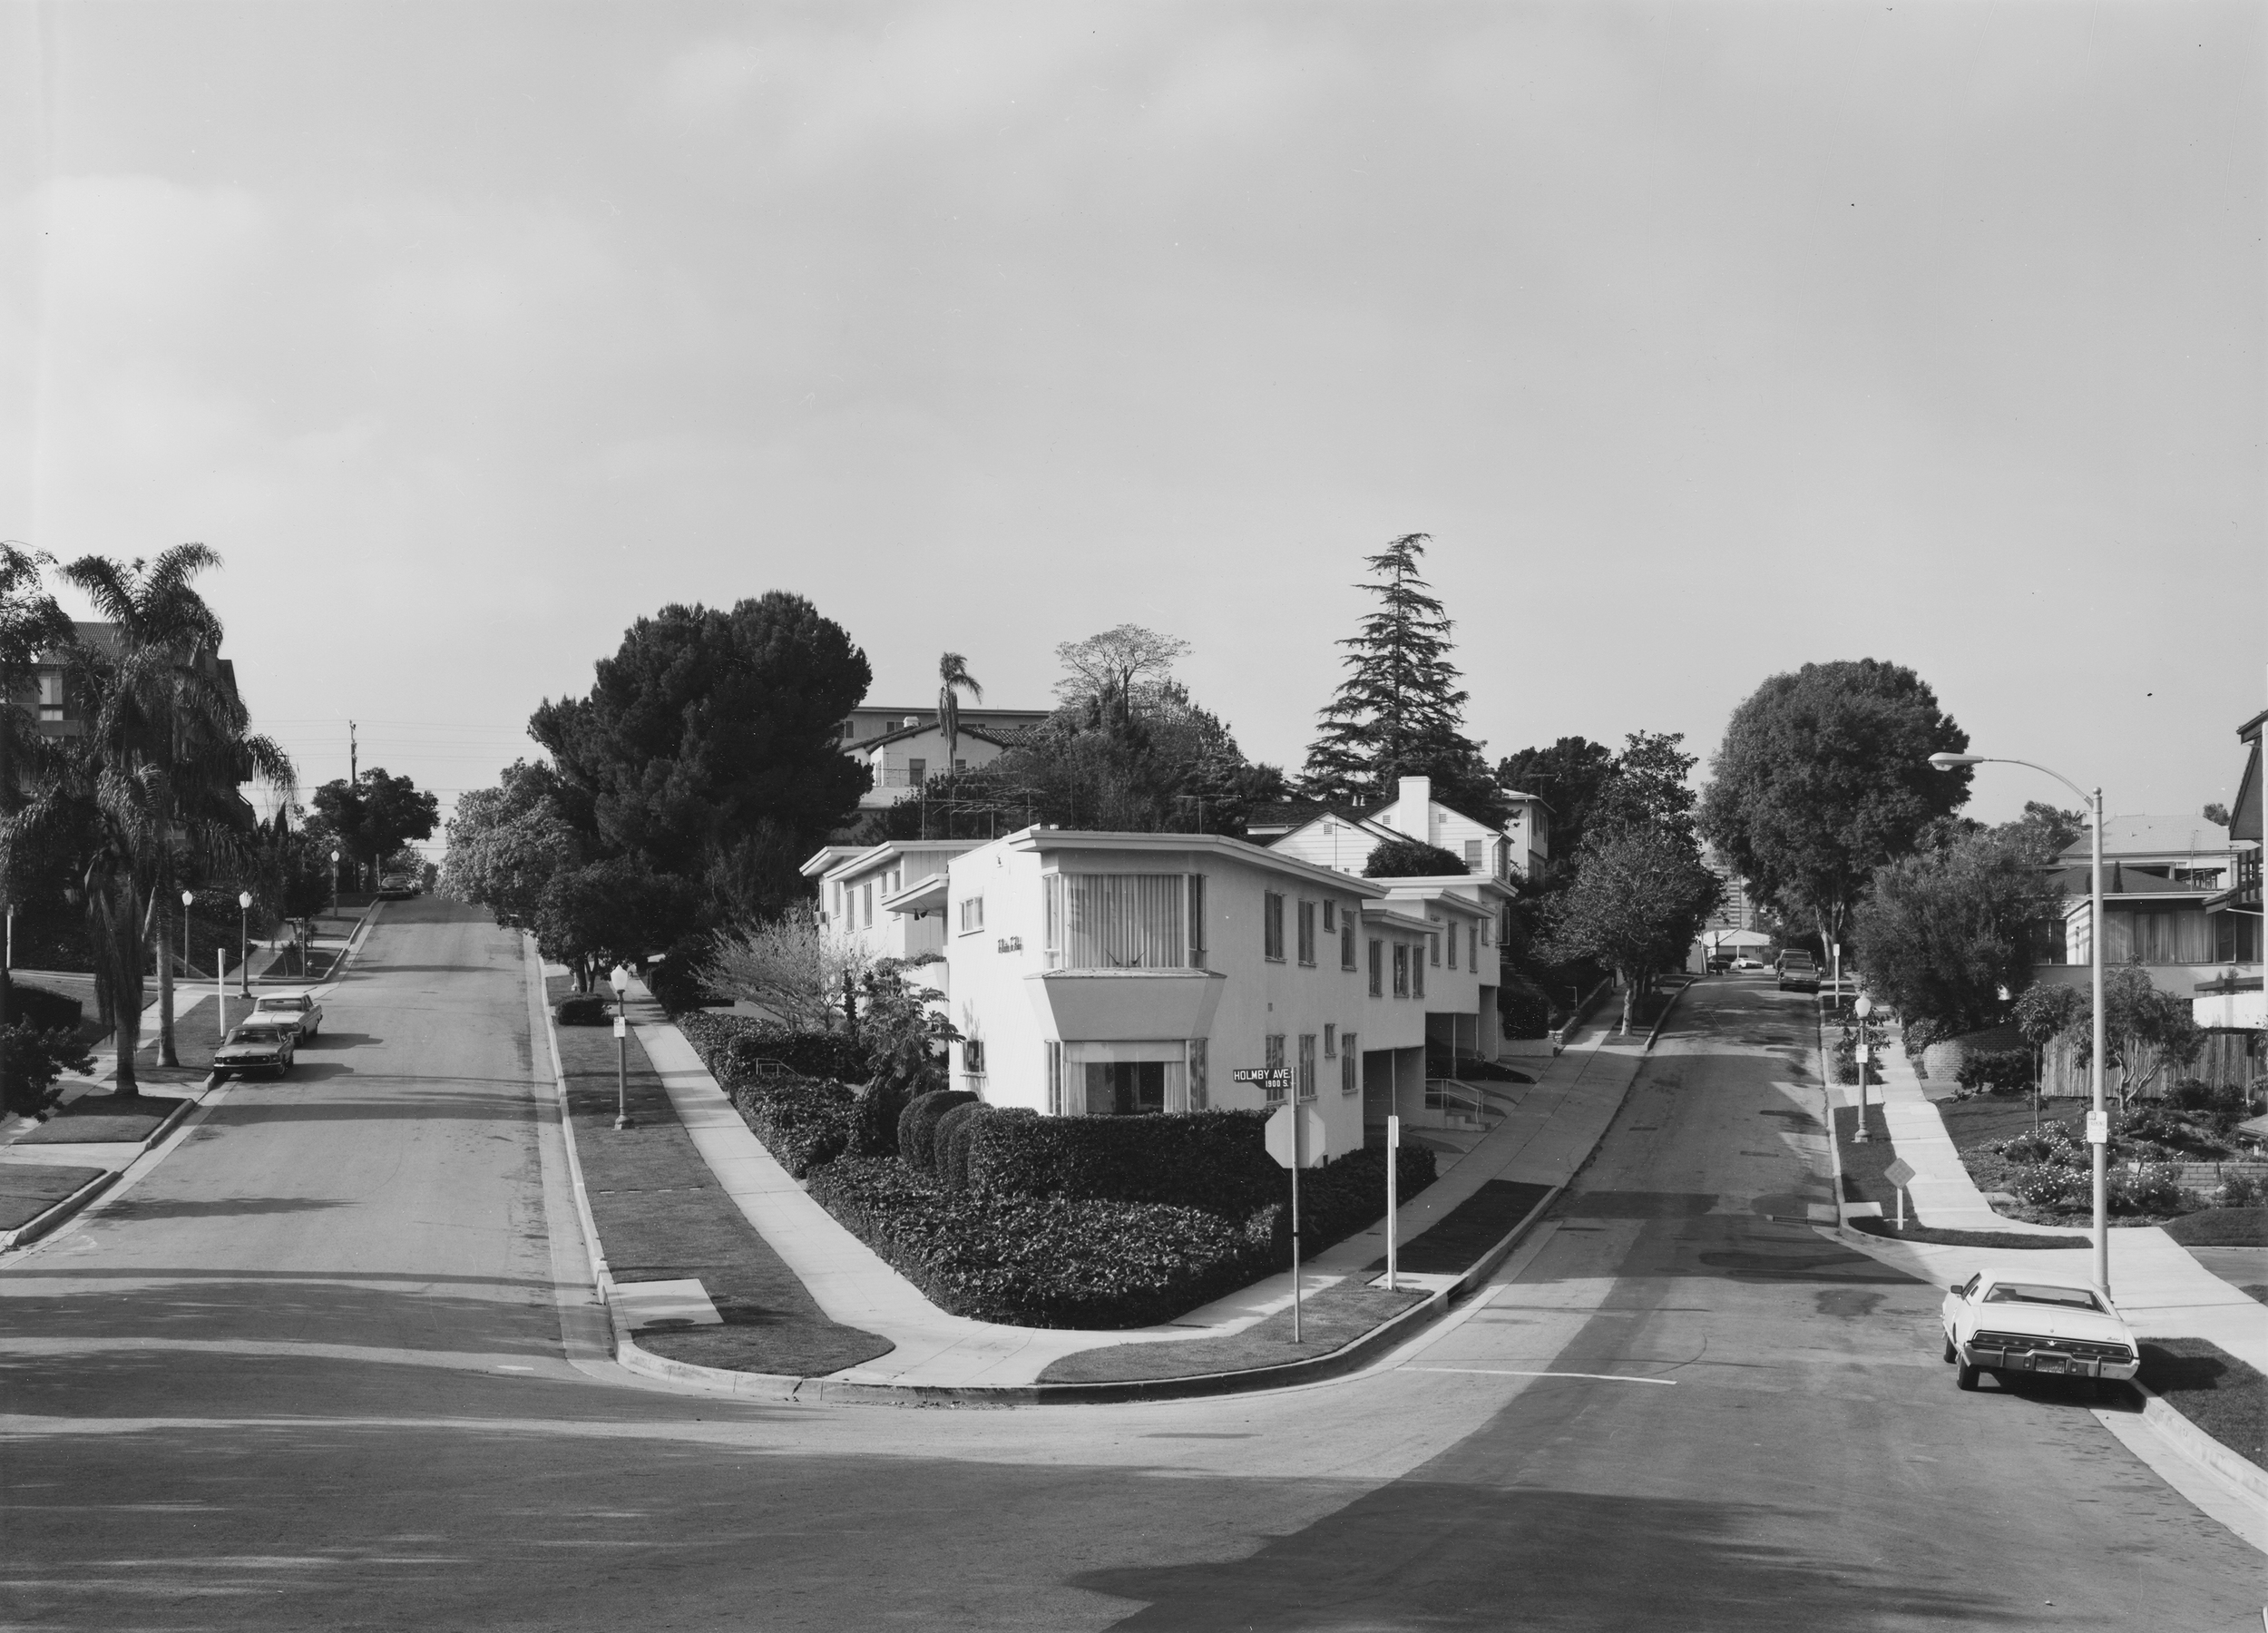 Bevan Davies, Holmby Ave., Los Angeles, 1976 vintage gelatin silver print, 16 x 20 inches